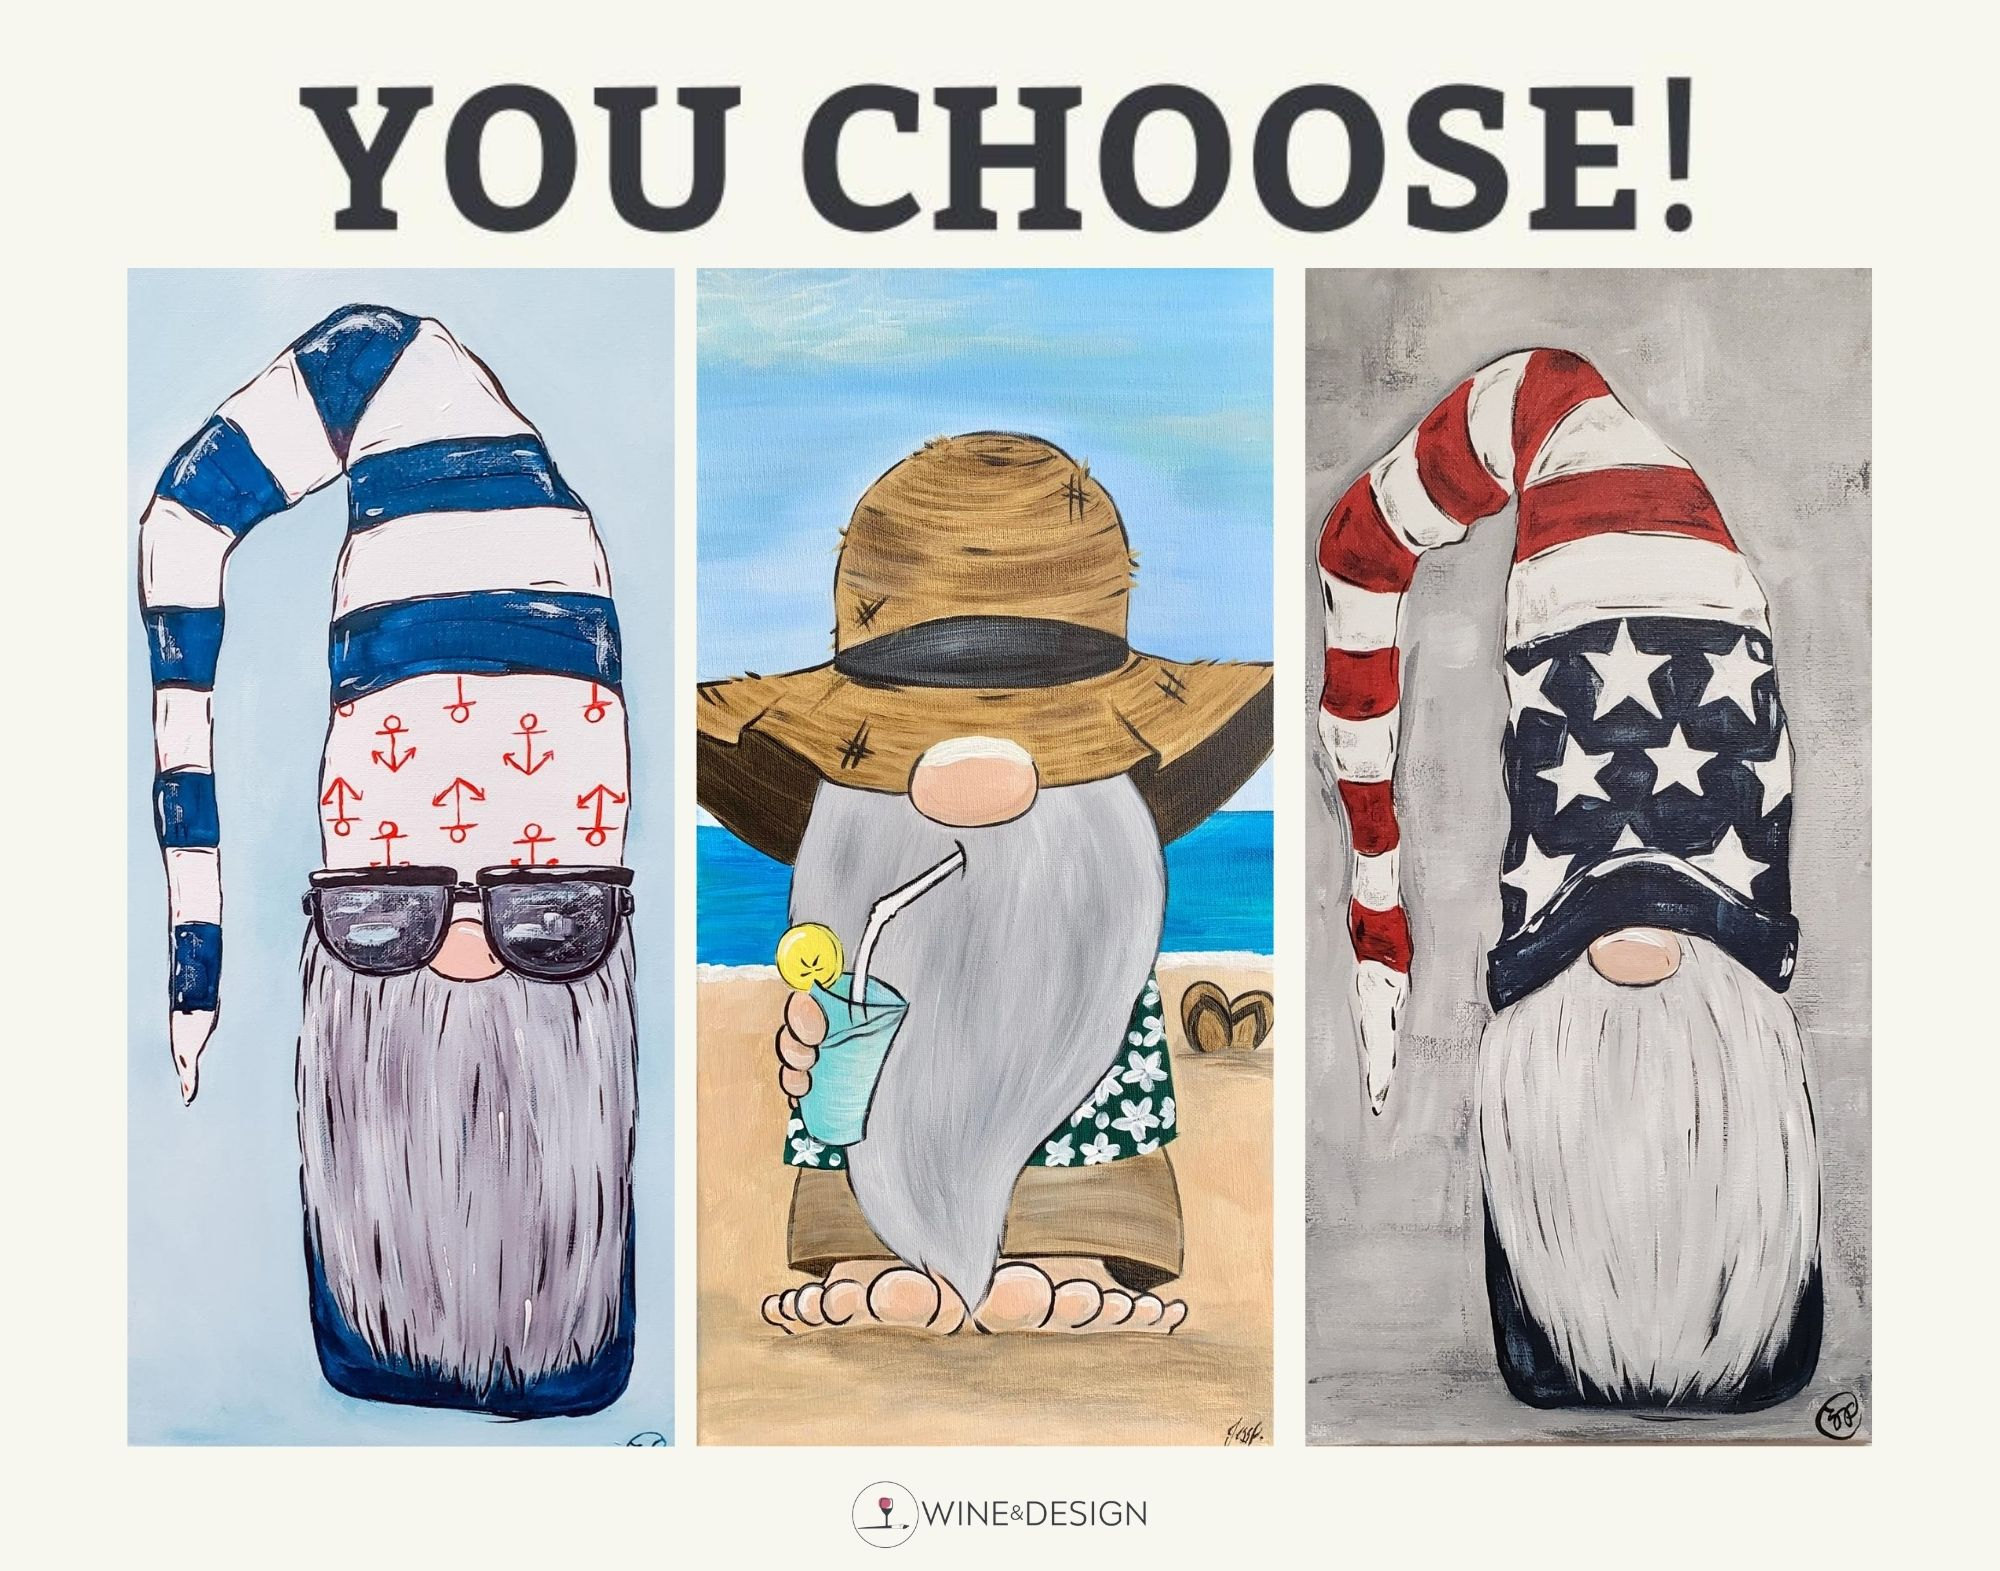 ON WHEELS at Rick's   You Choose Gnomes: Nautical, Best Life or Patriotic